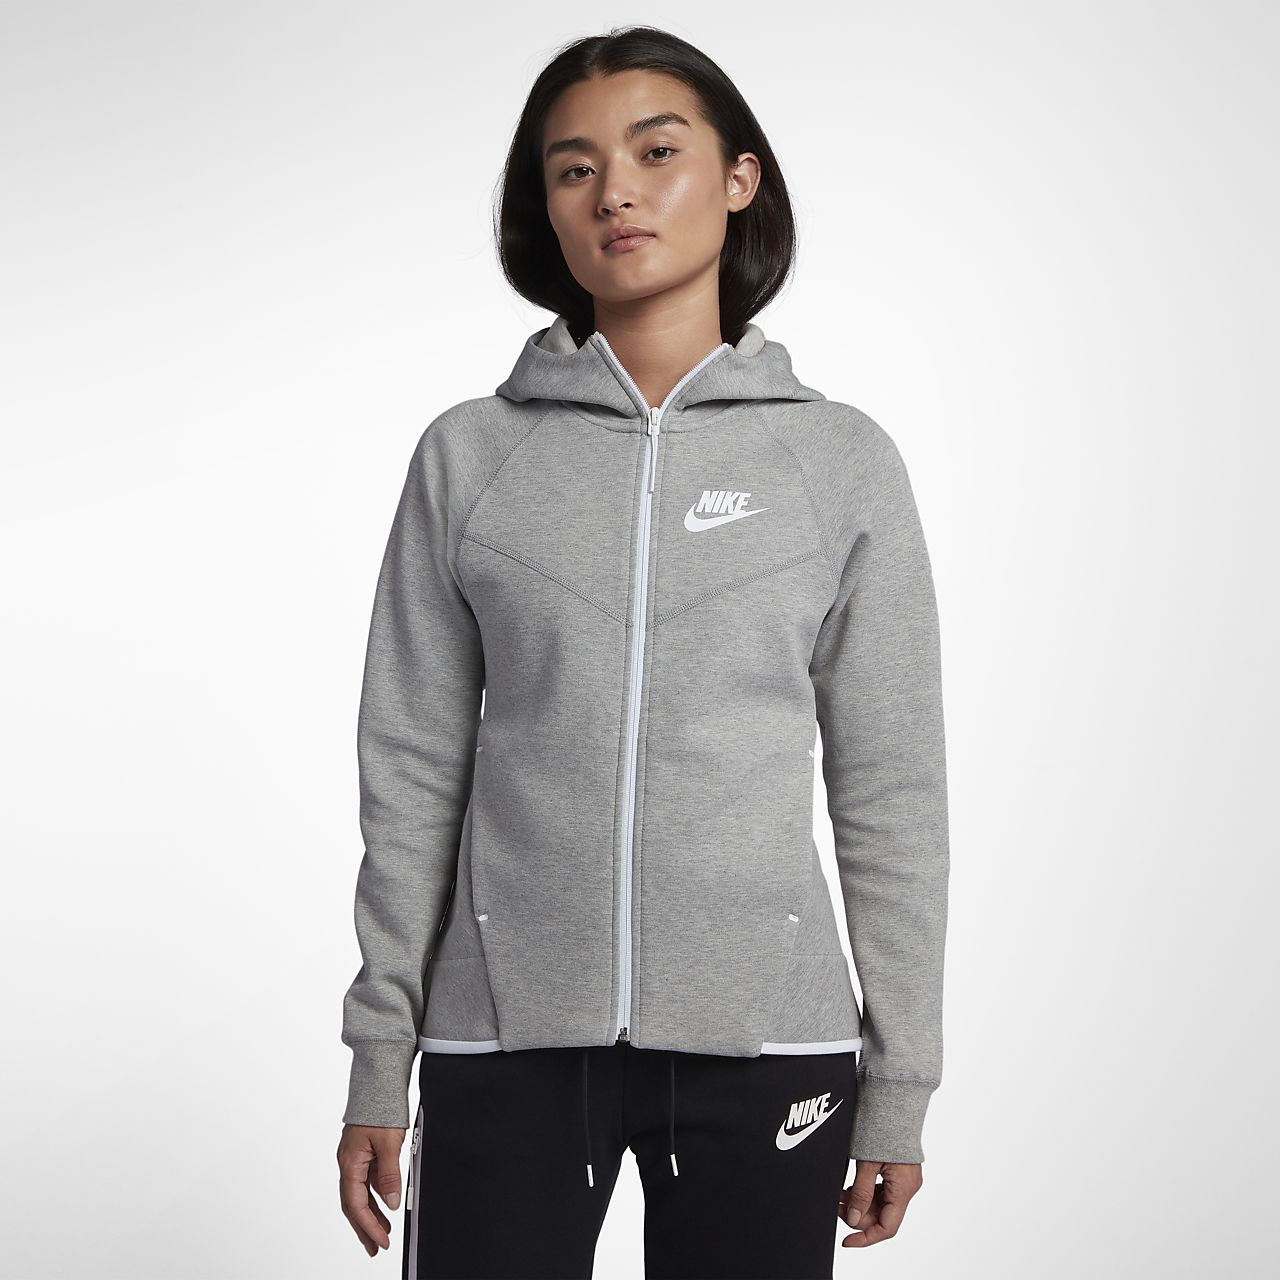 ded6c2fcd74 Nike Sportswear Tech Fleece Windrunner Women's Full-Zip Hoodie. Nike ...